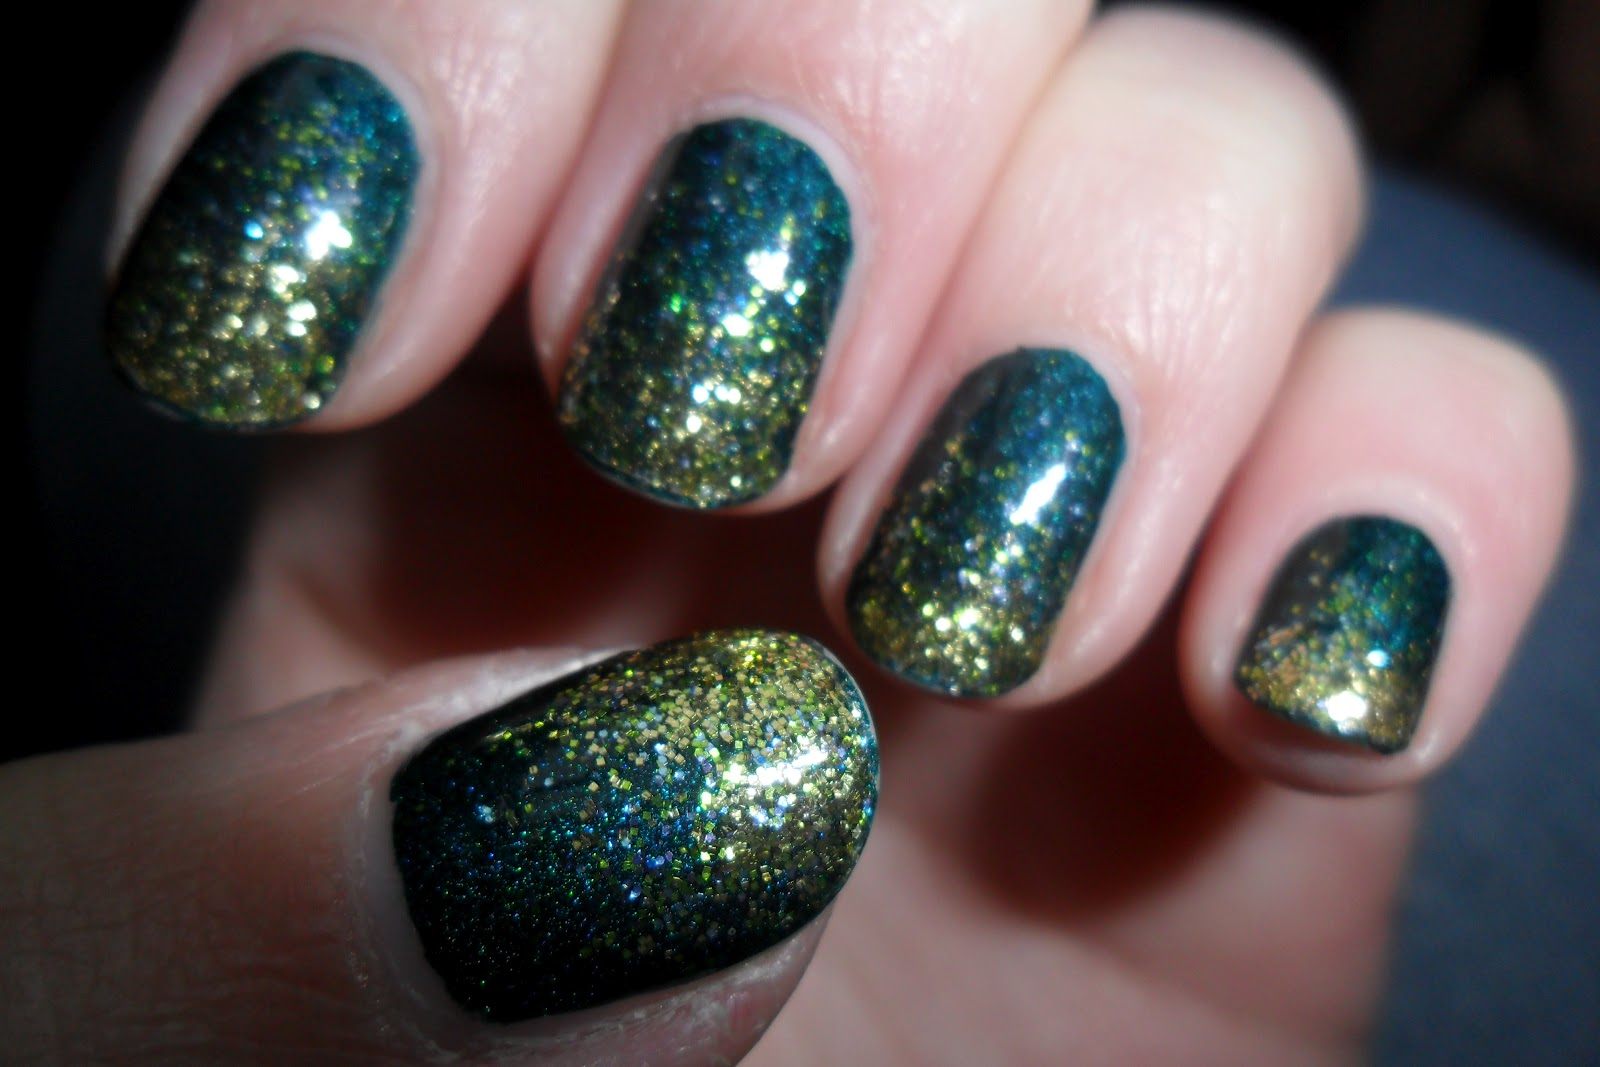 teal holographic with green and gold glitter gradient